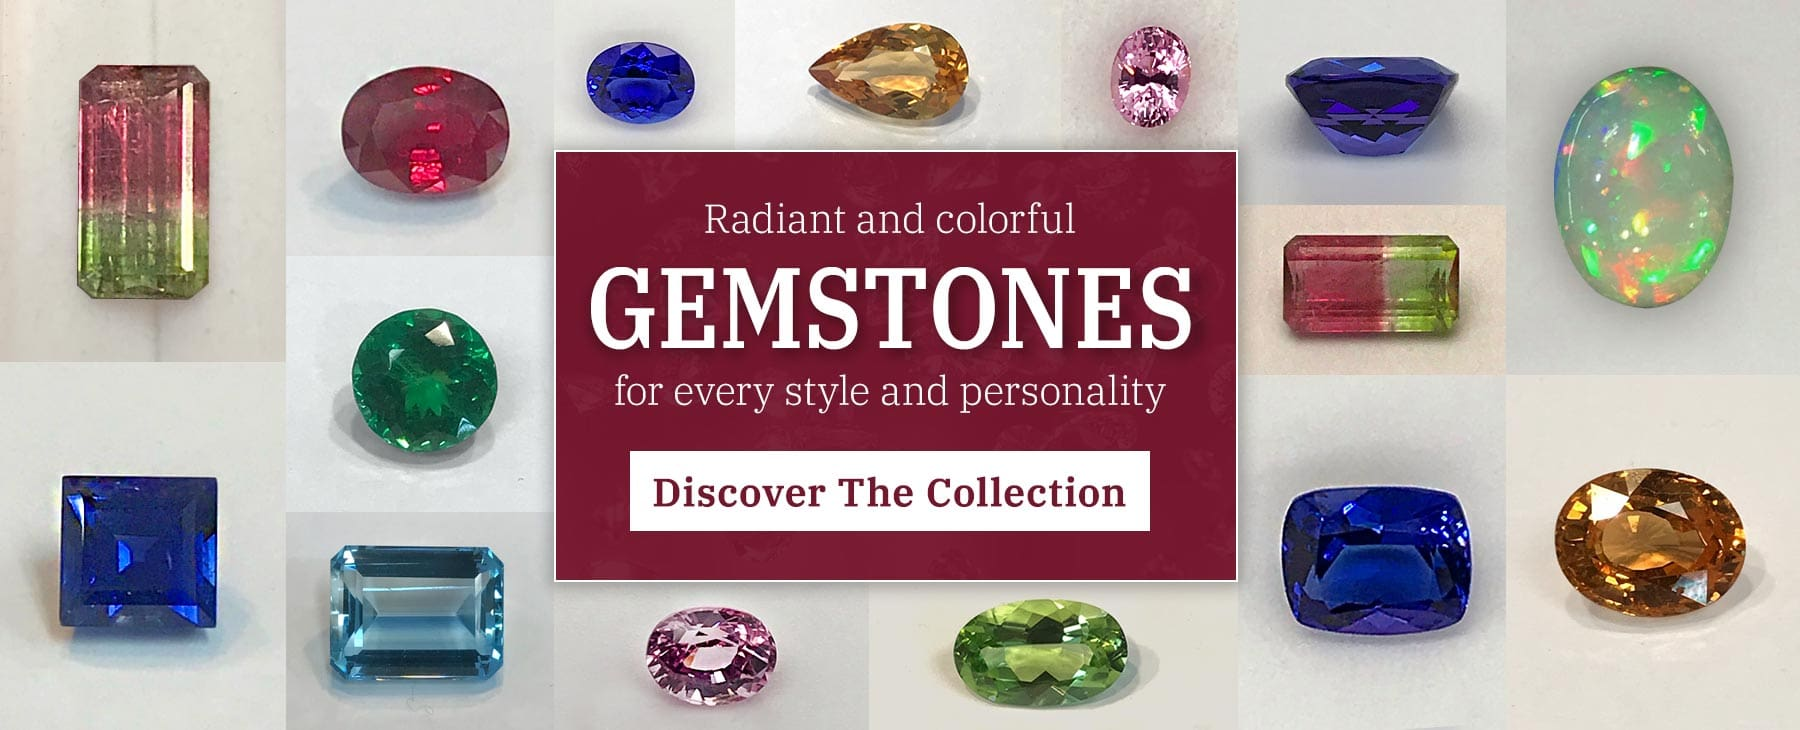 Shop Loose Gemstones At Henry's Jewelers In Warrington, PA At Henry's Jewelers